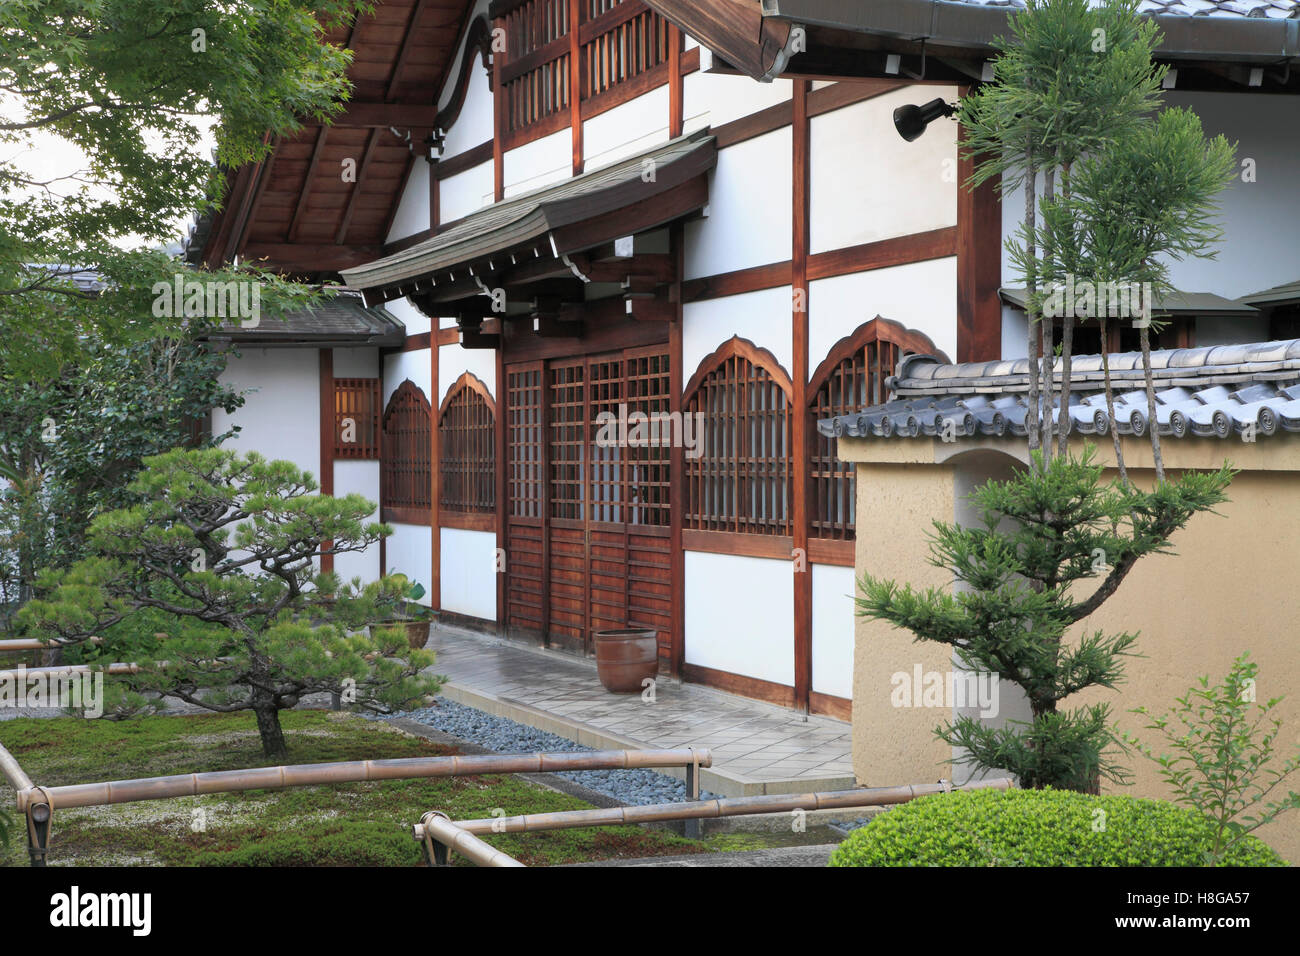 Japan, Kyoto, Daitoku-ji, Korin-in, buddhist temple, - Stock Image